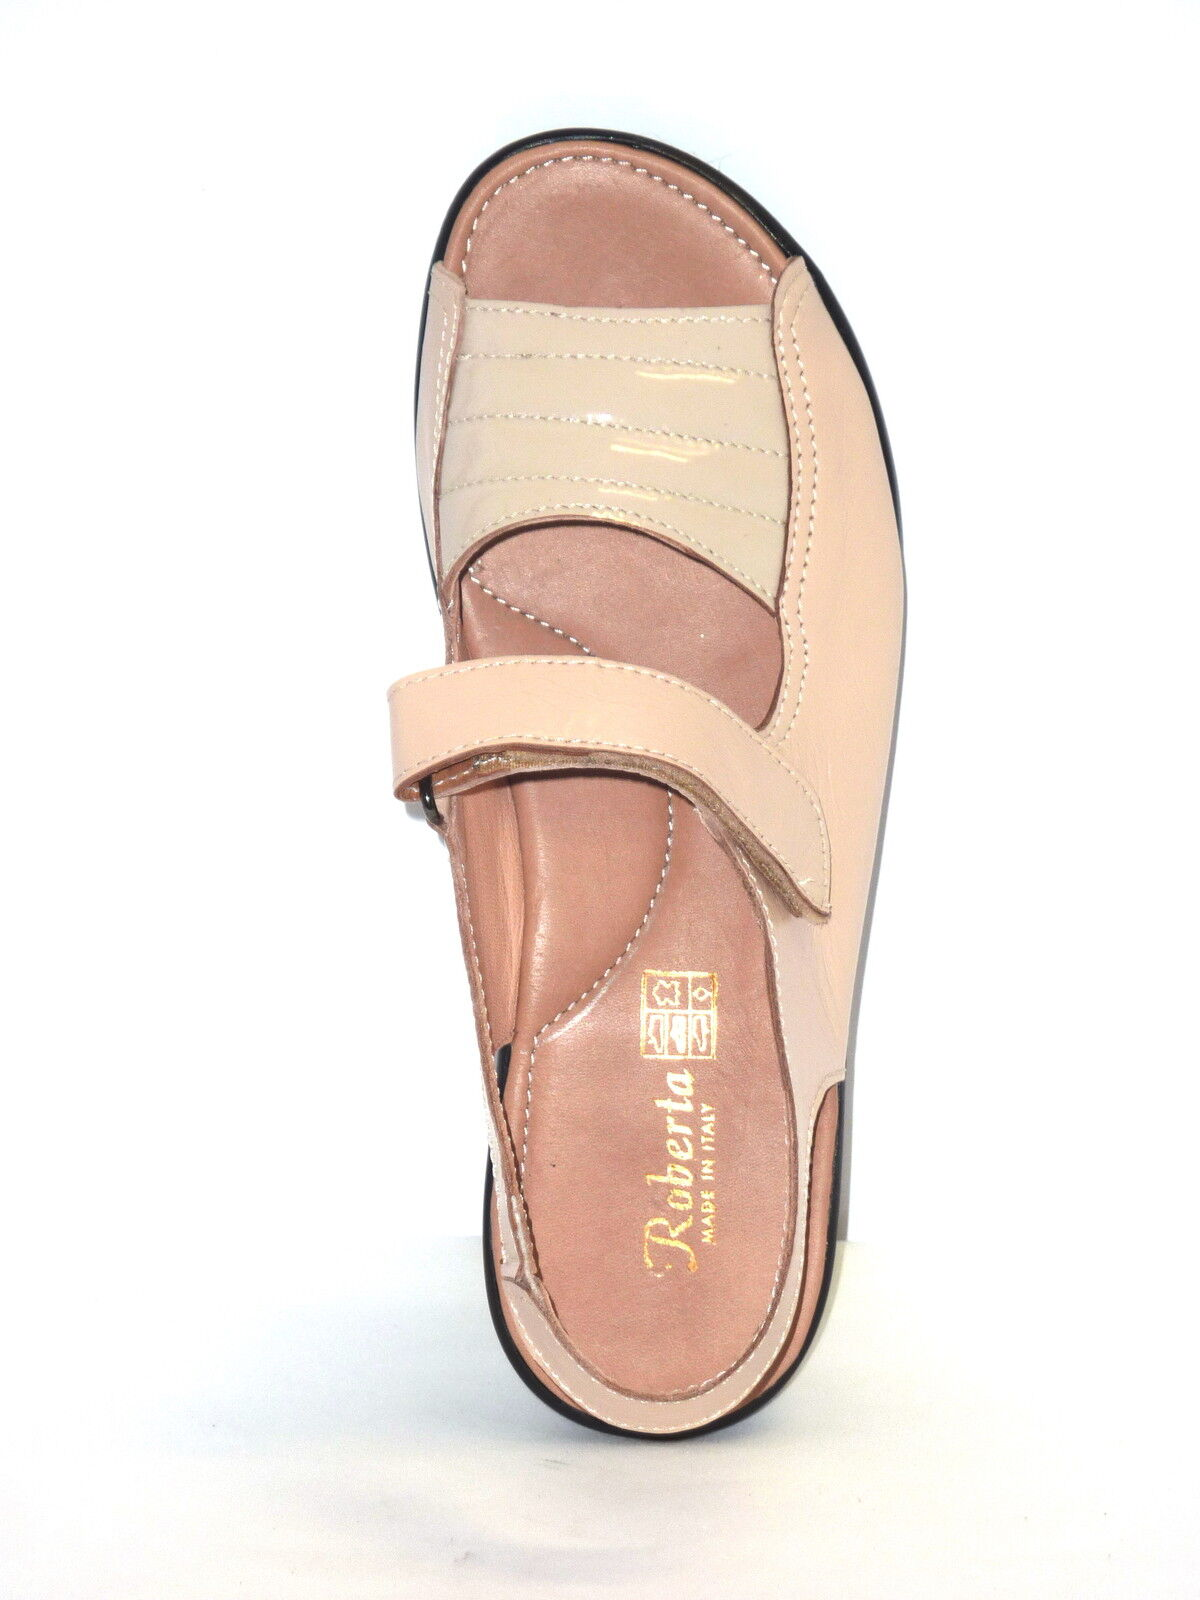 SANDALI Damens COMFORT IN PELLE  made BEIGE ANATOMICO n. 39 made  in italy 8d67b7